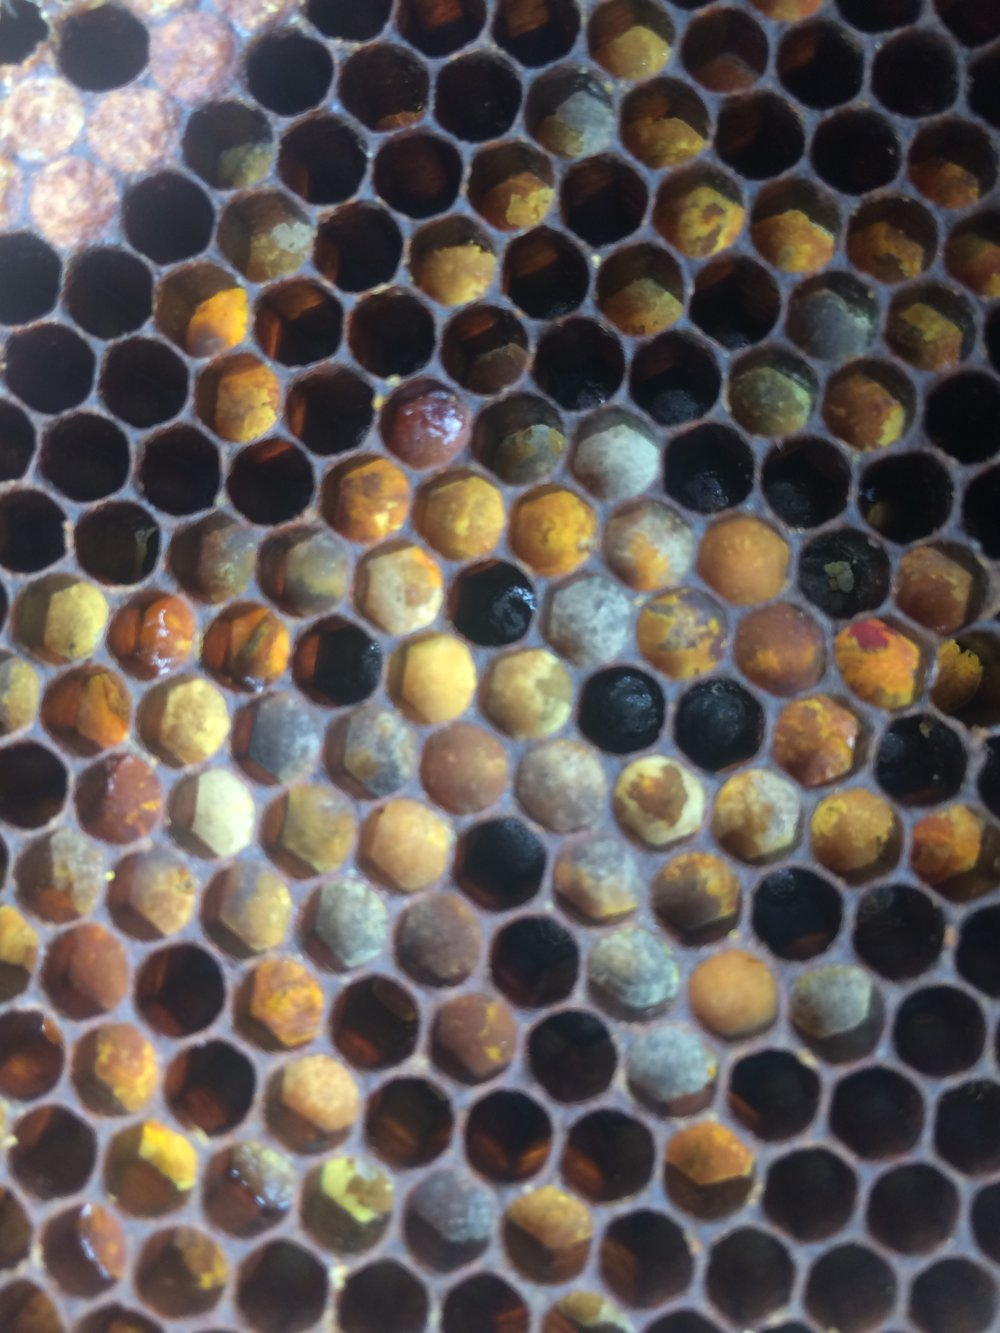 This is all POLLEN that the bees collected and stored in the hive.